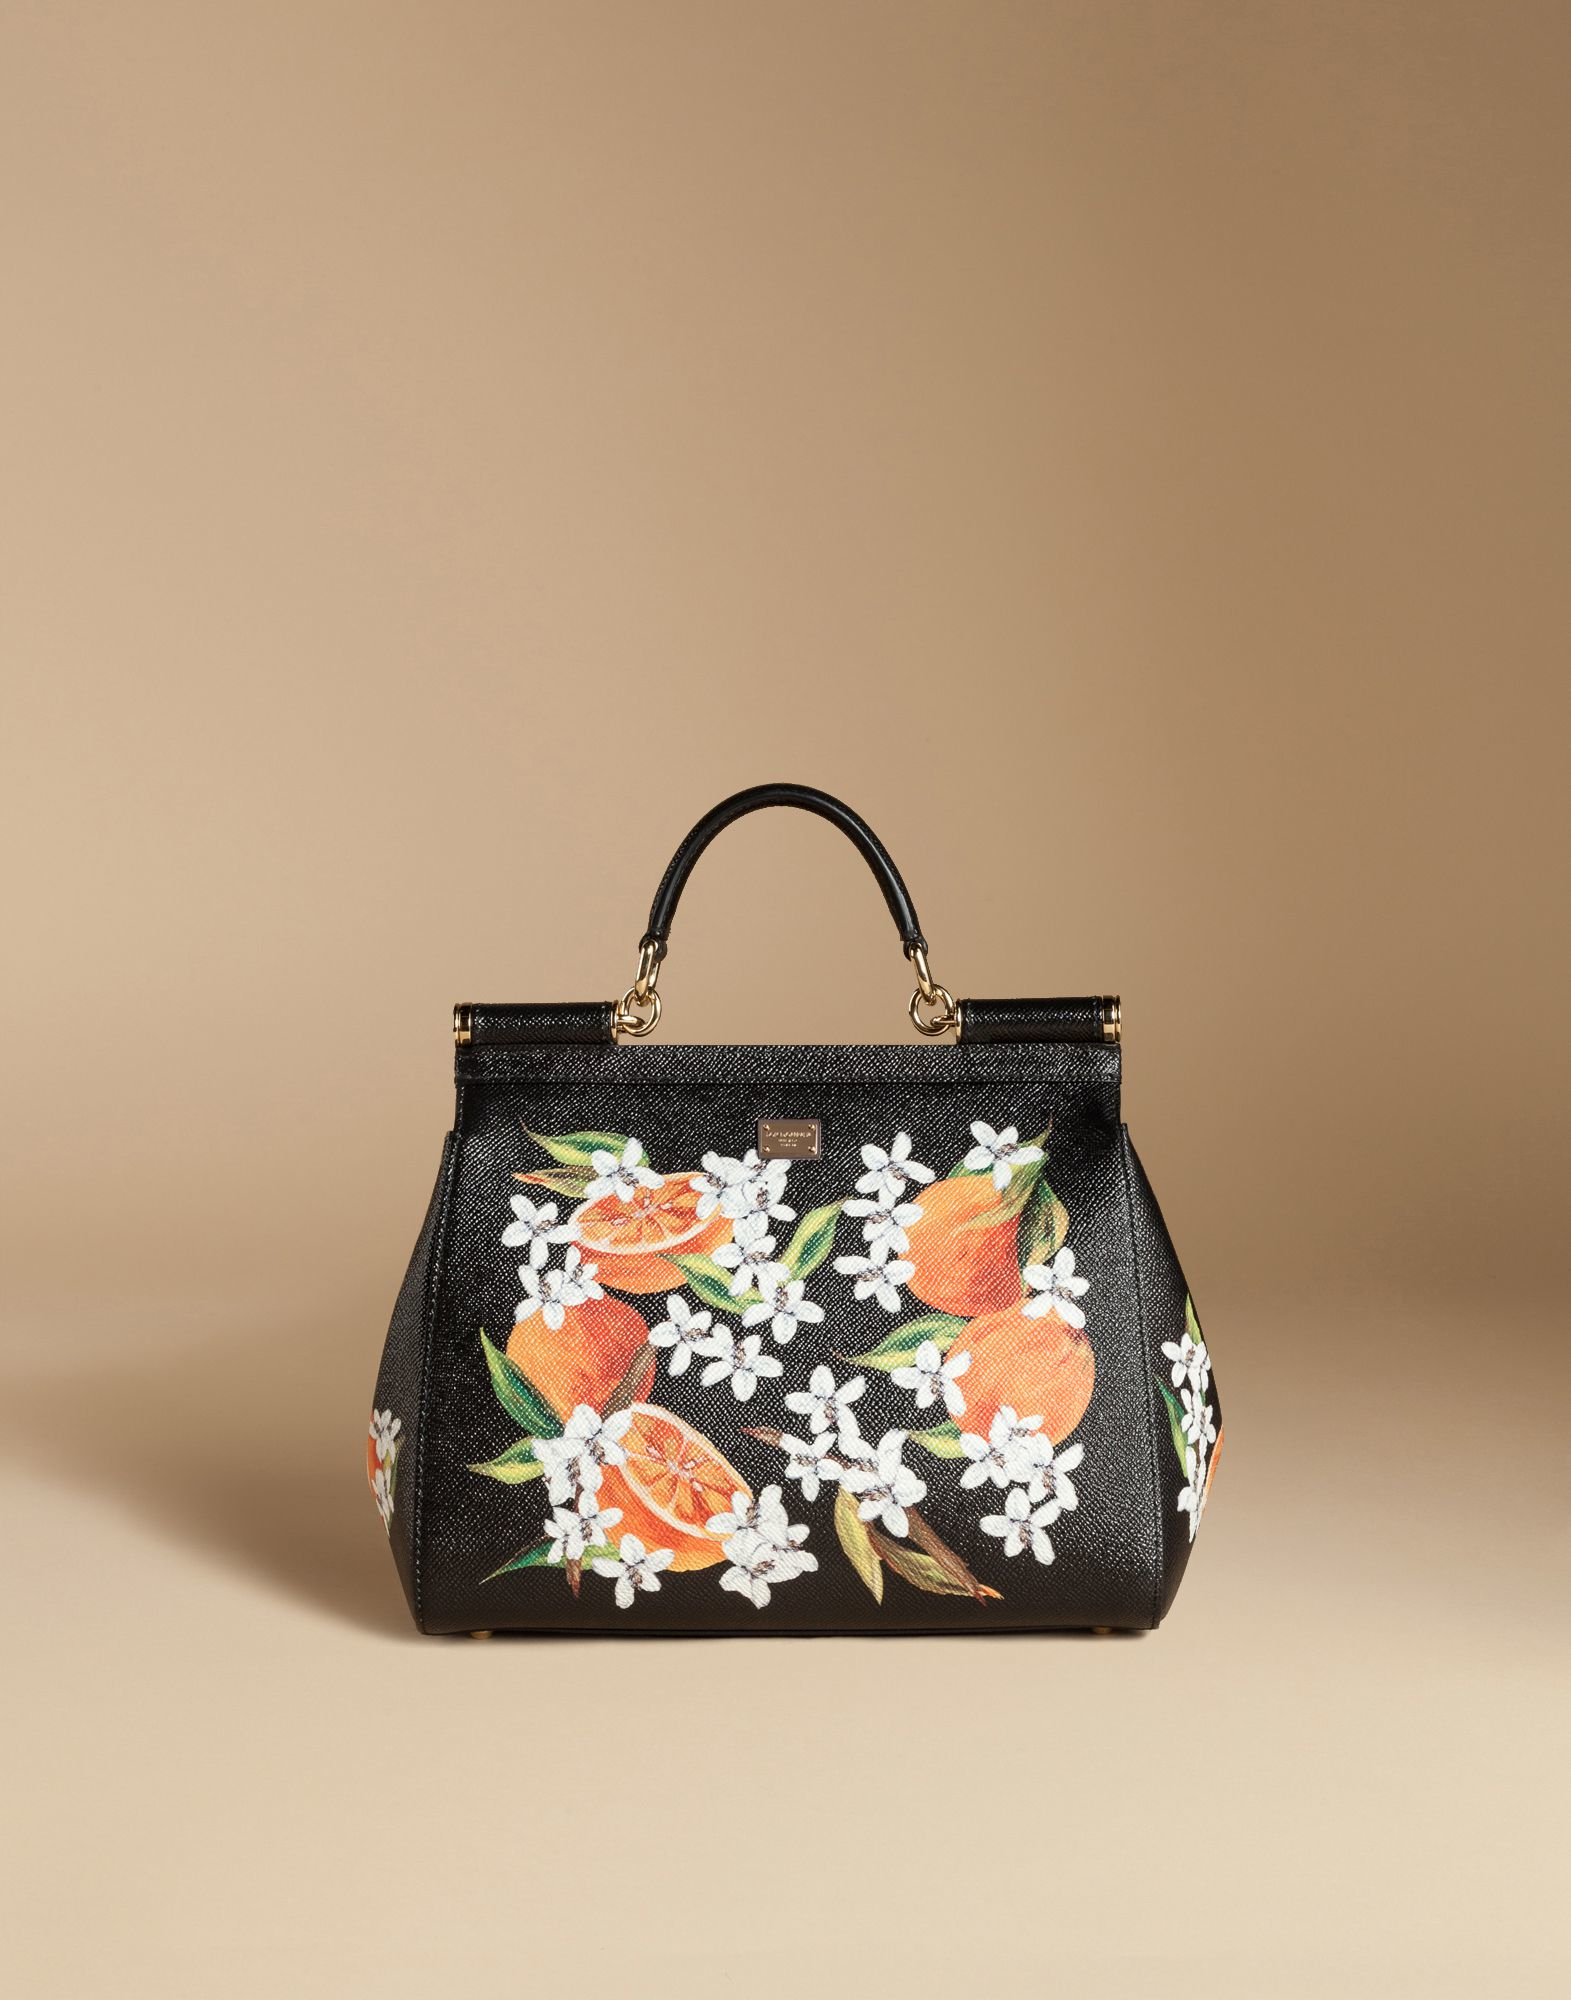 6ba020dab9e Dolce & Gabbana Medium Sicily Bag In Printed Dauphine Leather in ...